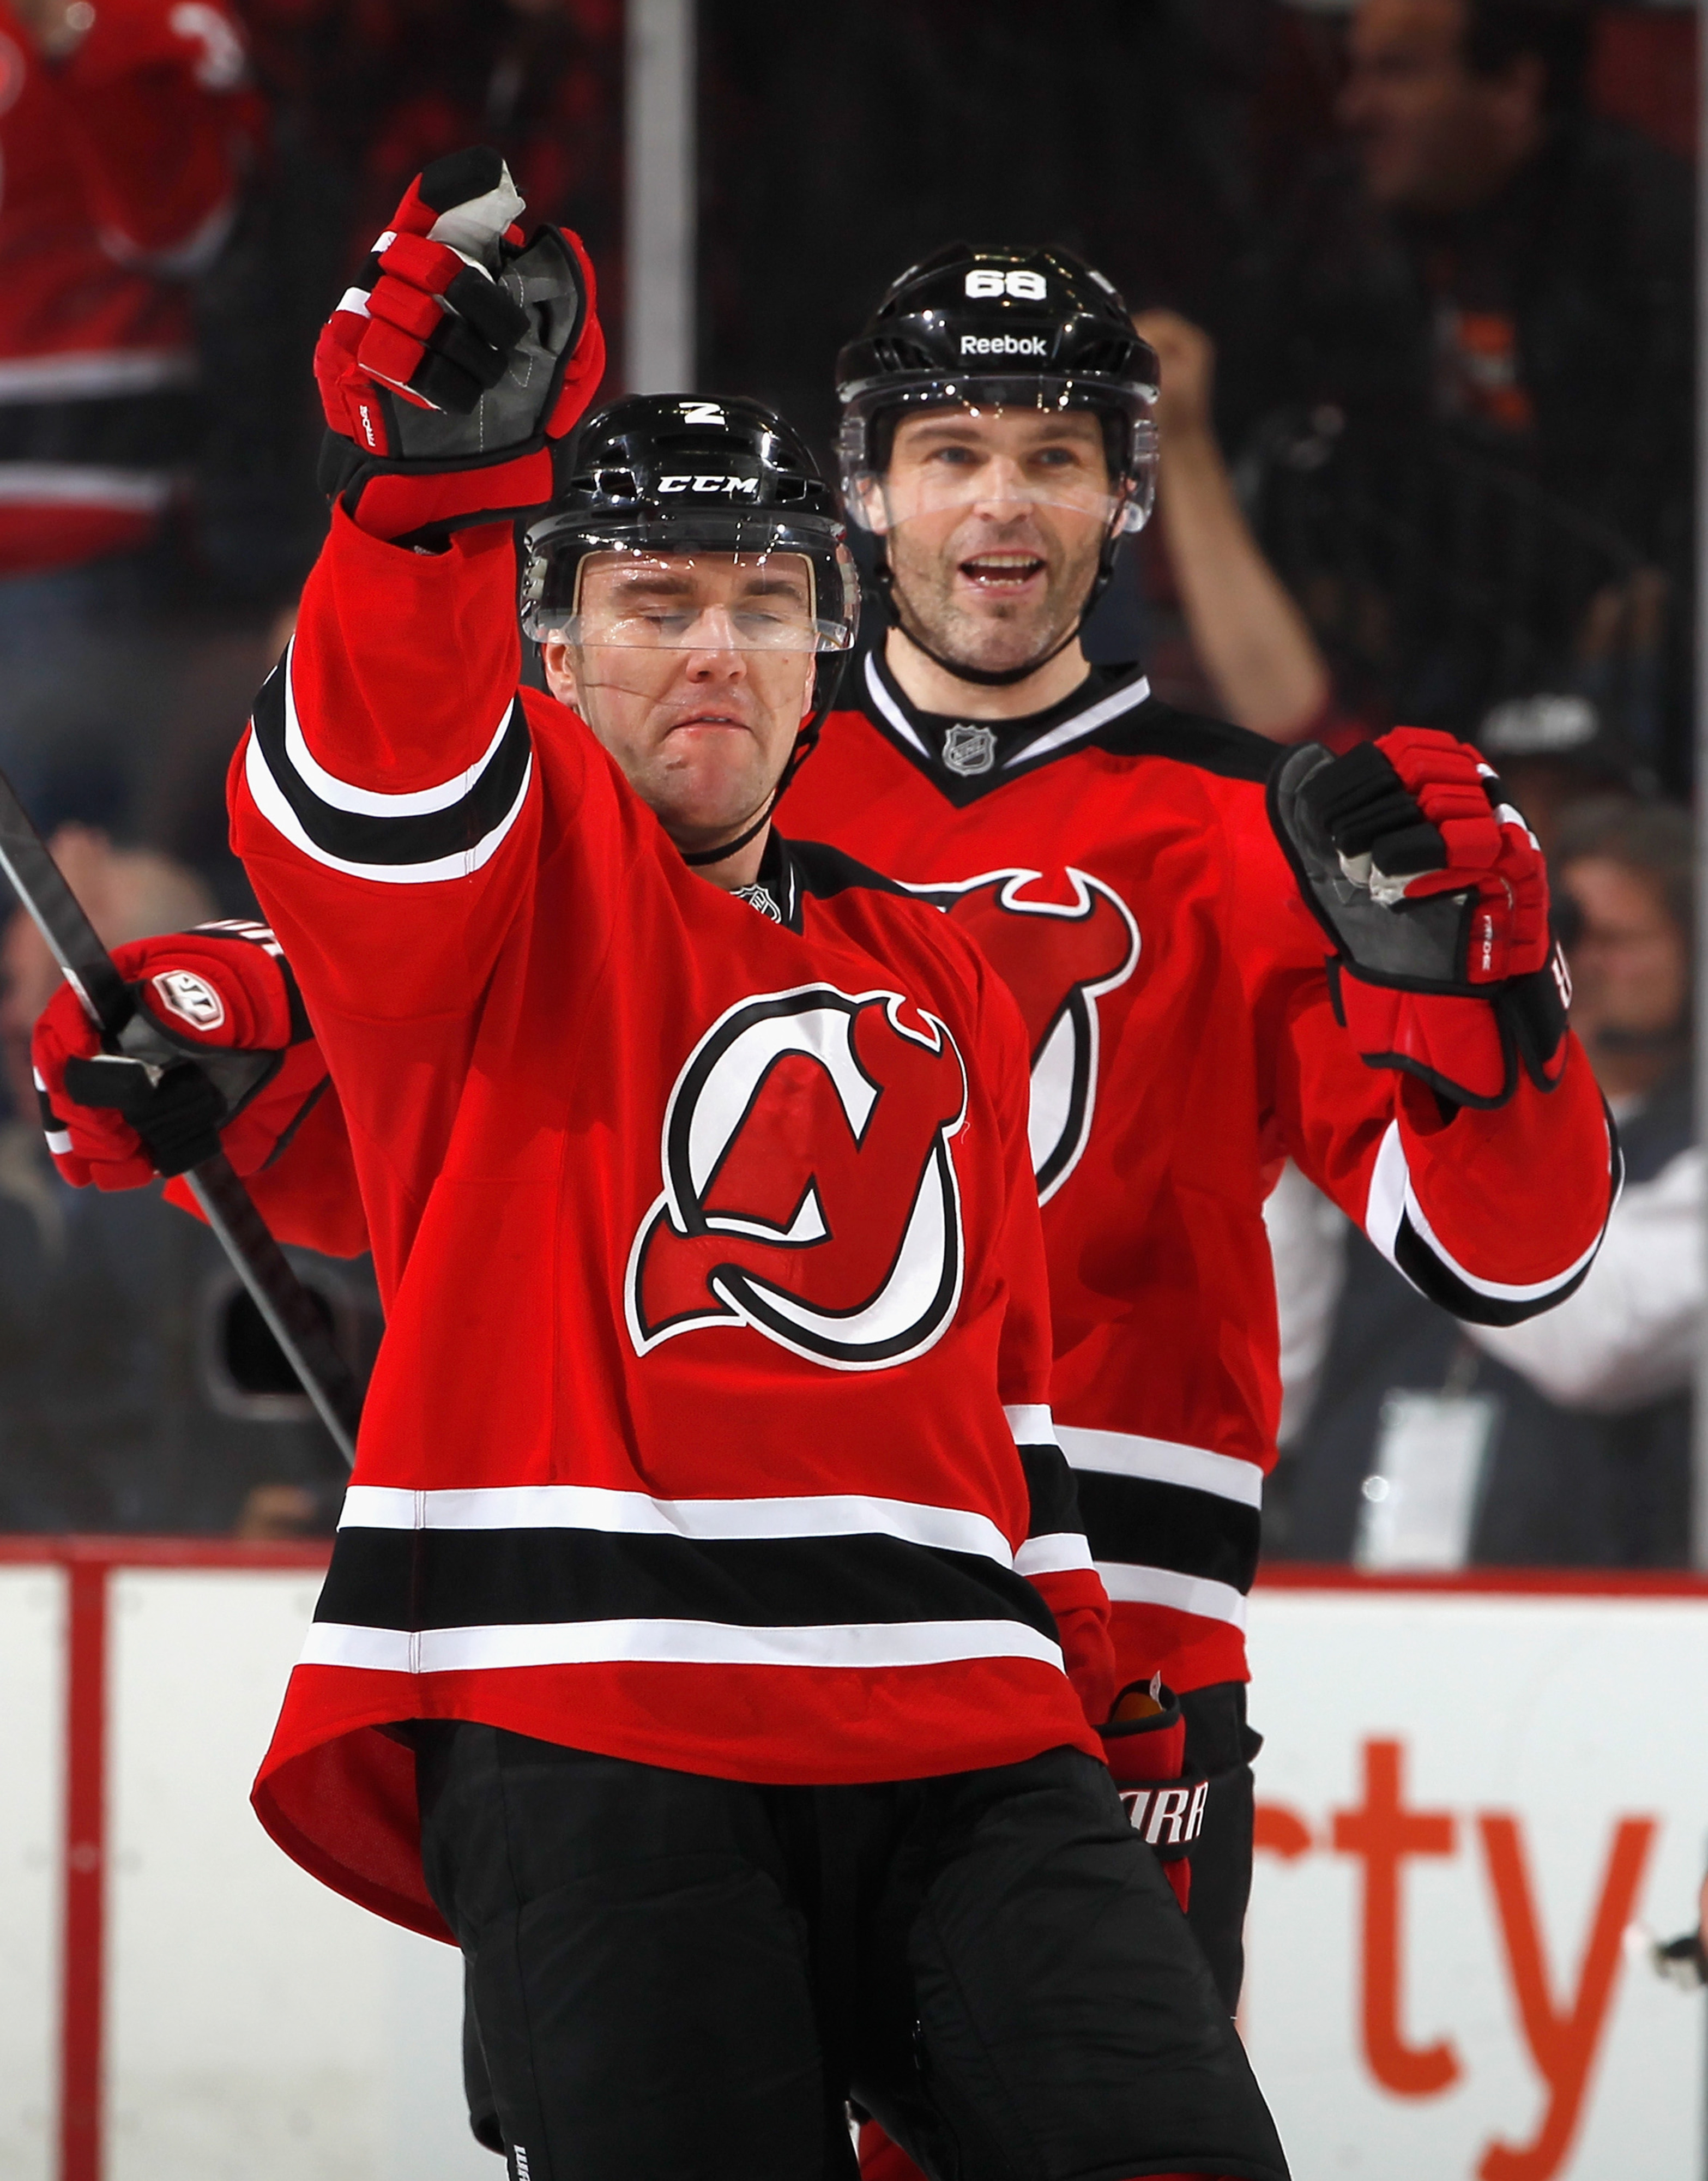 Hopefully, there will be many Czechs celebrating power play goals this season in NJ.